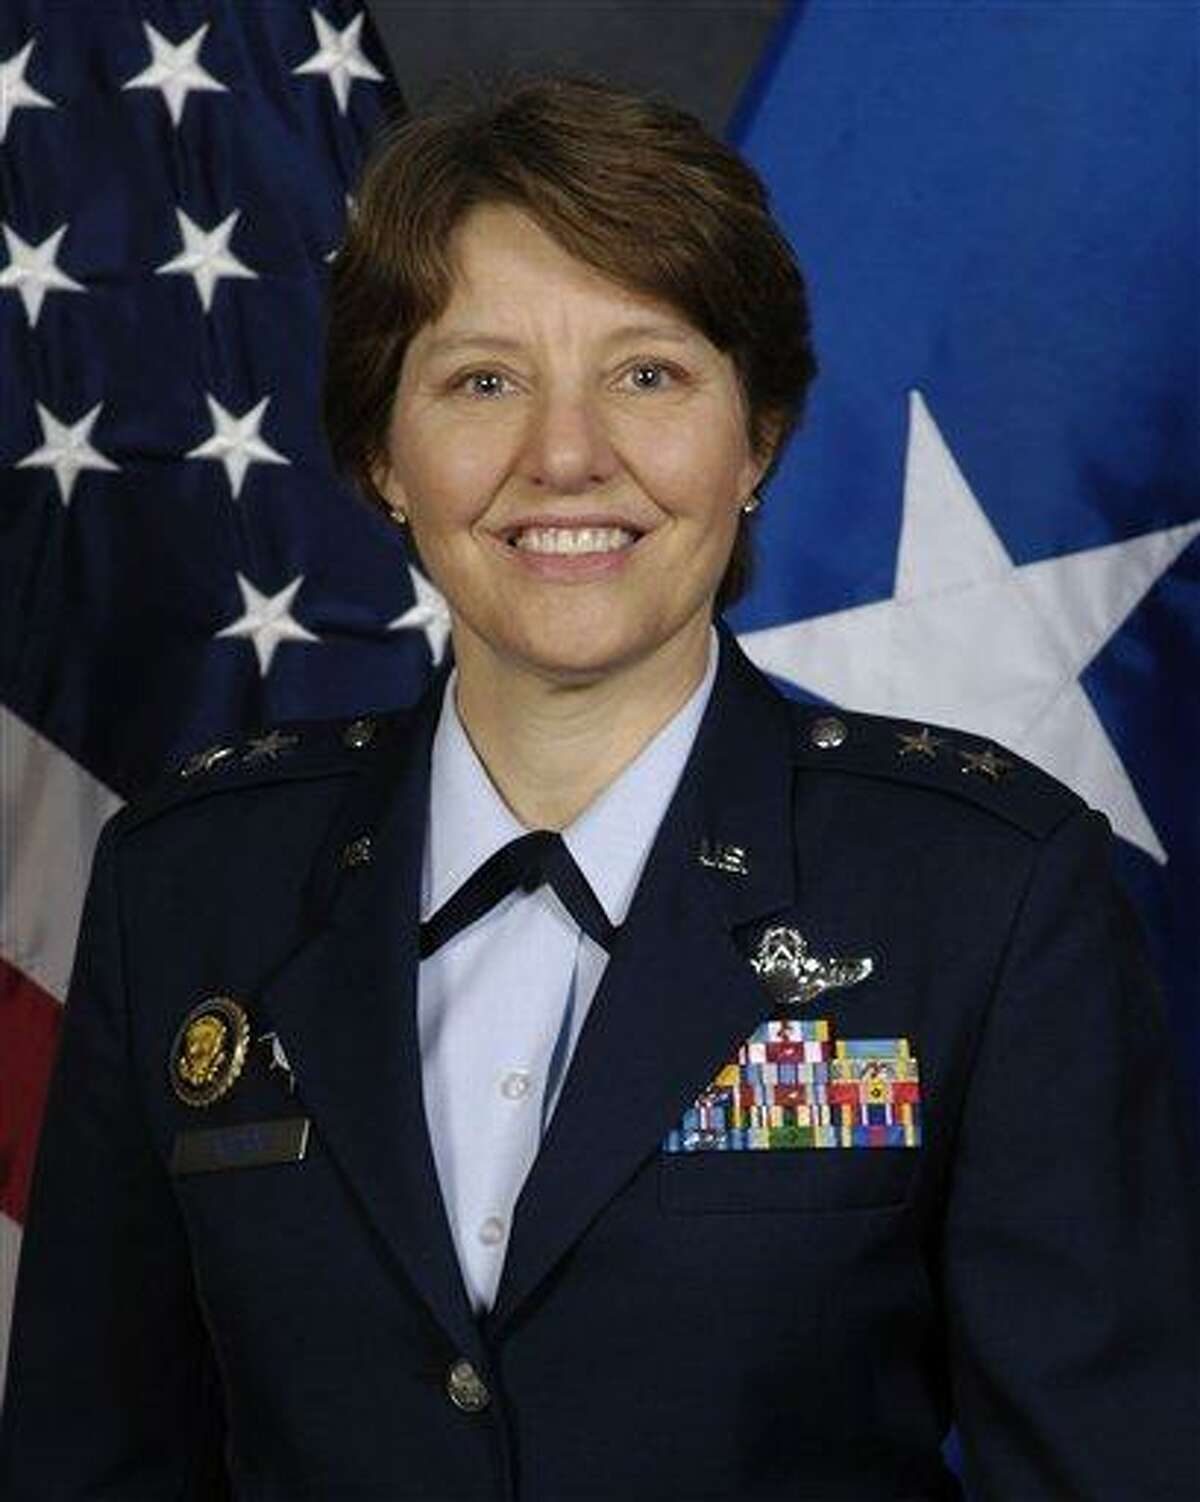 """This undated image provided by the U.S. Air Force shows Maj. Gen. Michelle D. Johnson. Johnson's appointment to become the first woman to command the Air Force Academy marks another breach of the """"brass ceiling"""" that keeps women from top assignments in the military an advocacy group said Monday March 3, 2013. Johnson is believed to be the second woman appointed to command a service academy, after Coast Guard Rear Adm. Sandra Stosz at the Coast Guard Academy. (AP Photo/U.S. Air Force)"""